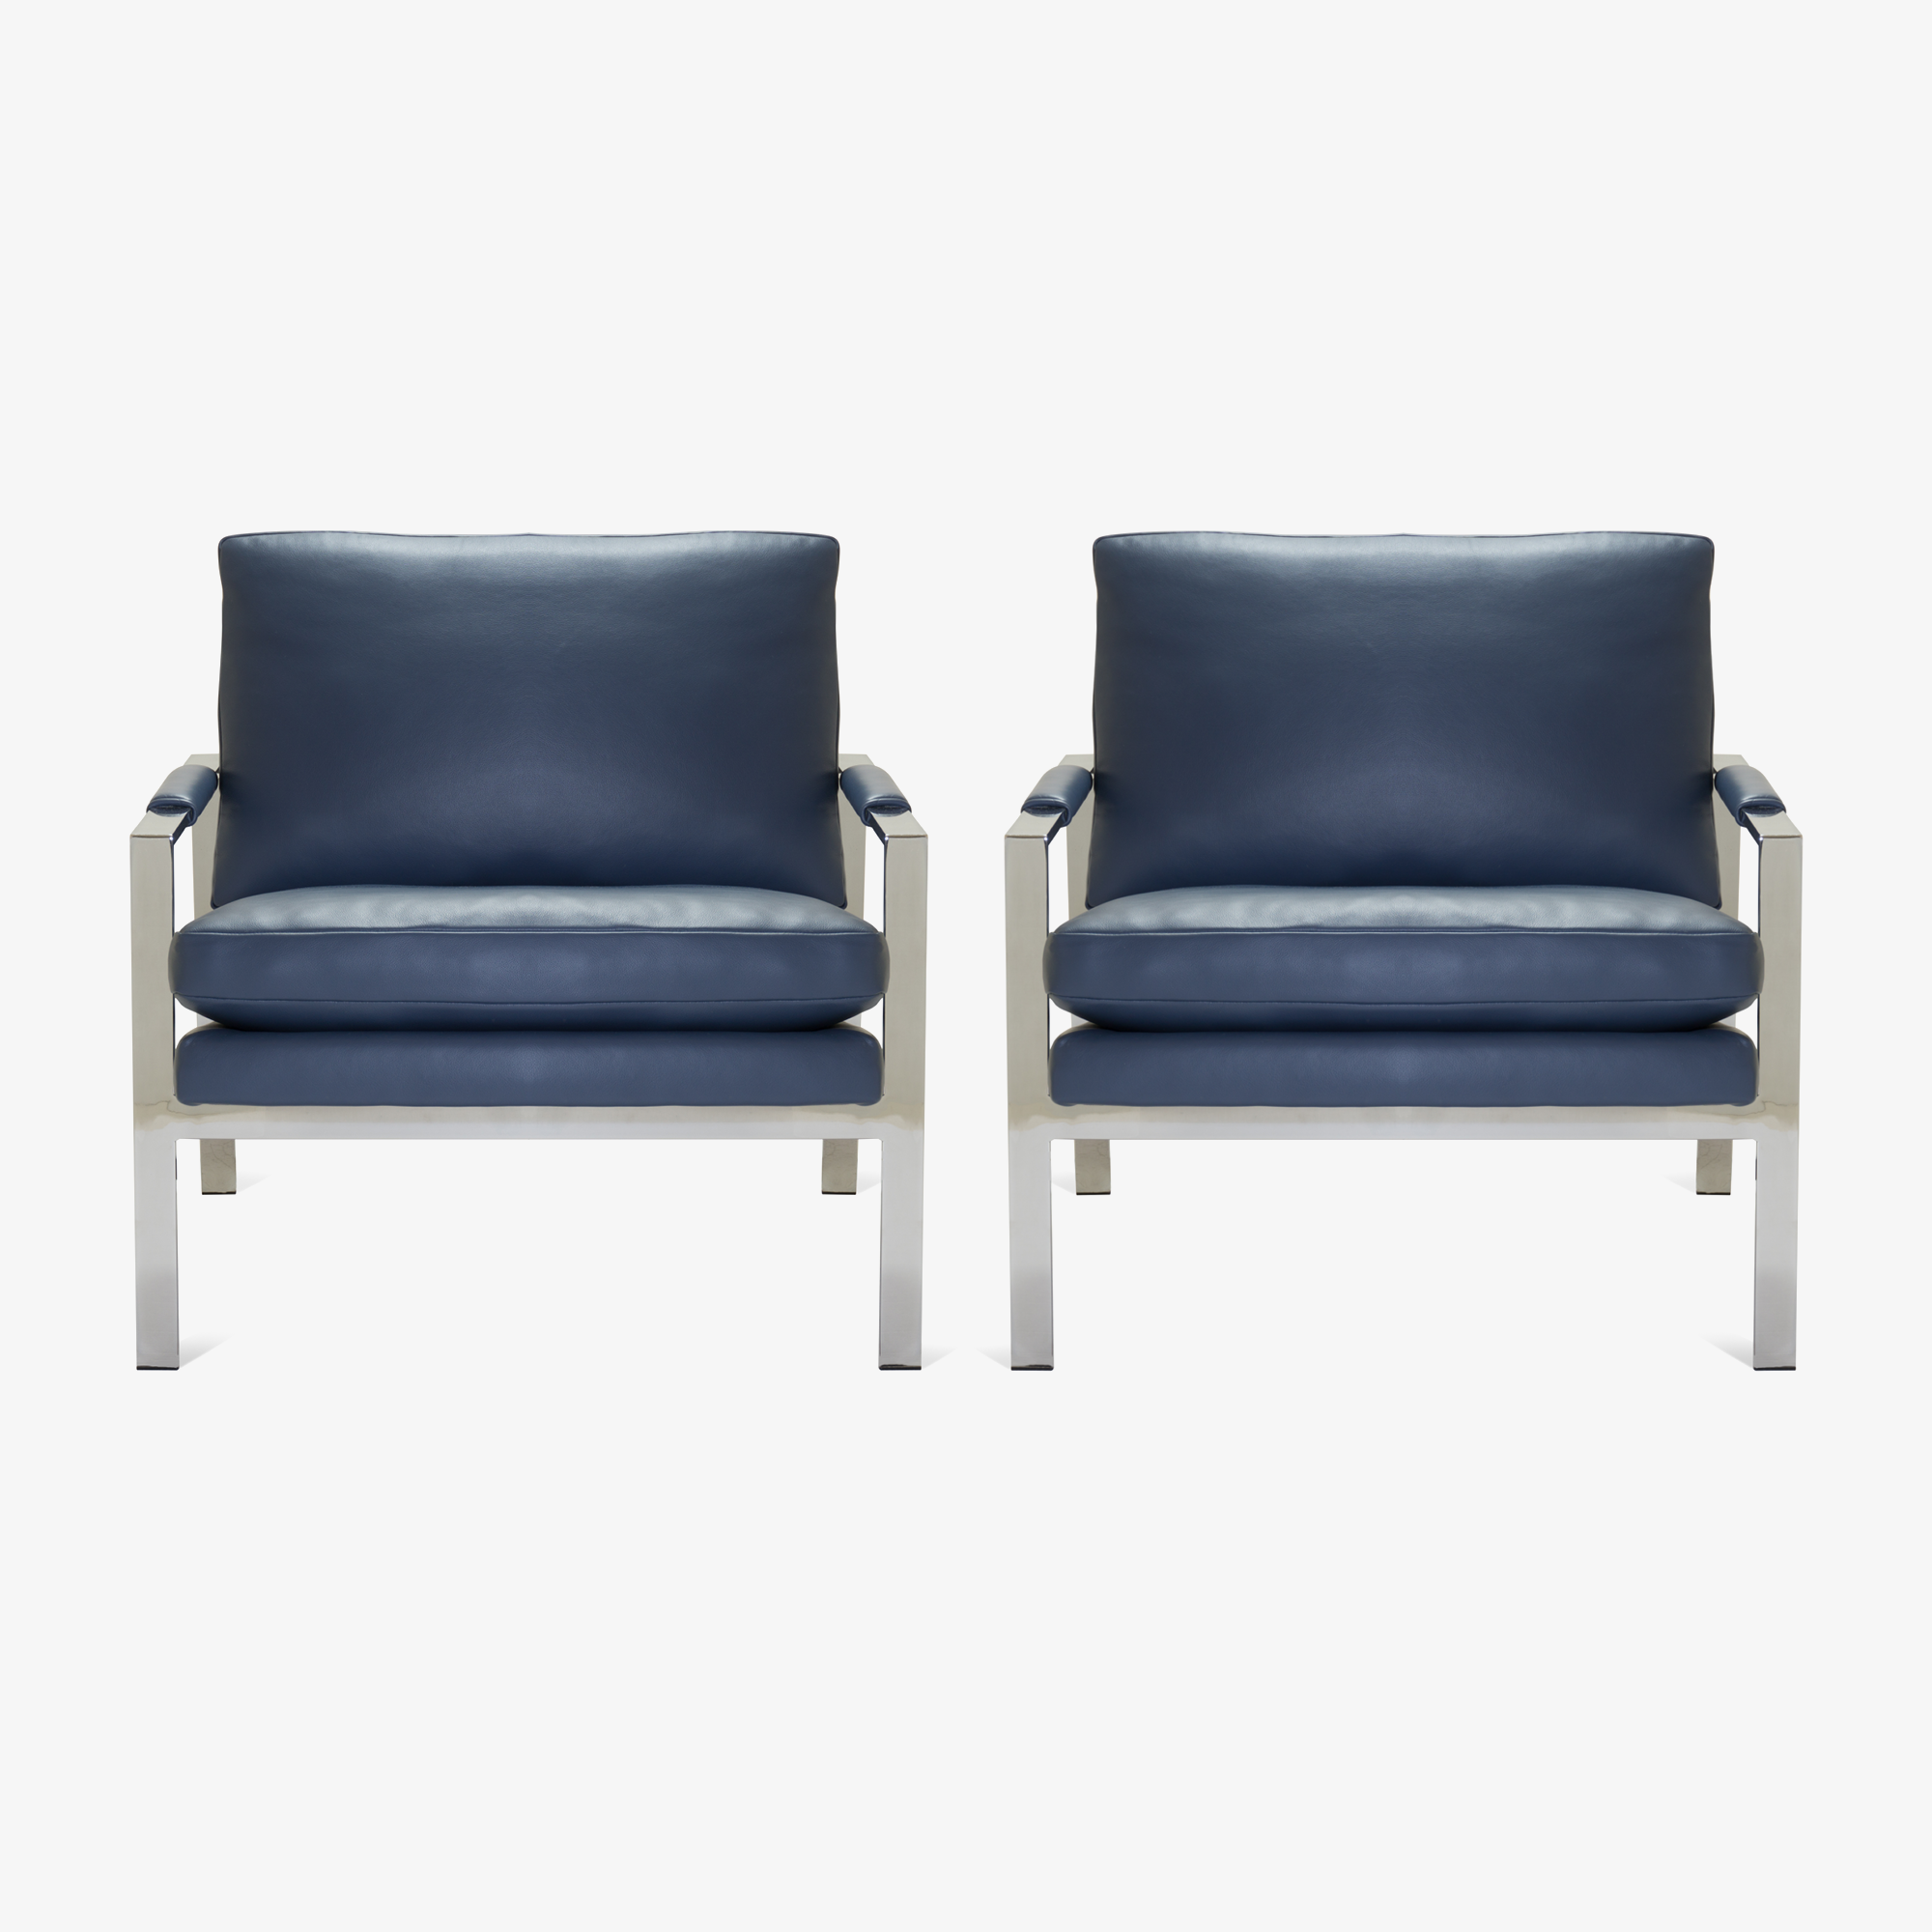 Flat-Bar Club Chairs in Navy Leather by Milo Baughman for Thayer Coggin3.png